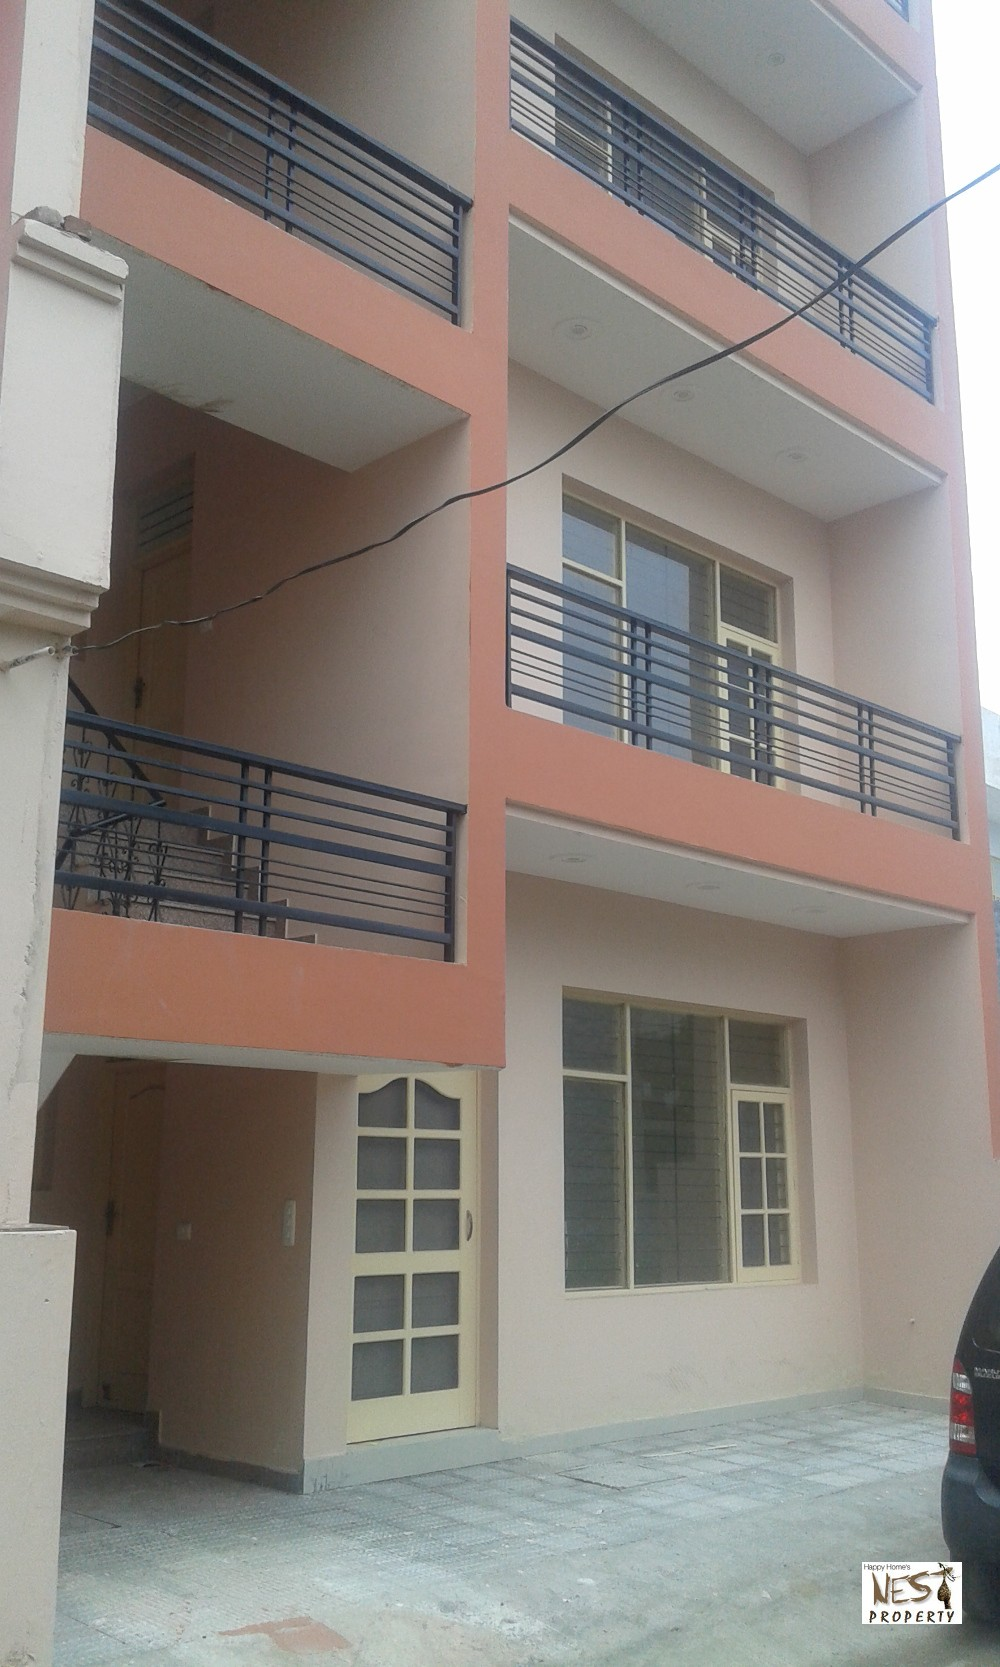 Flats For Sale In Chandigarh Flats In Zirakpur Ready To